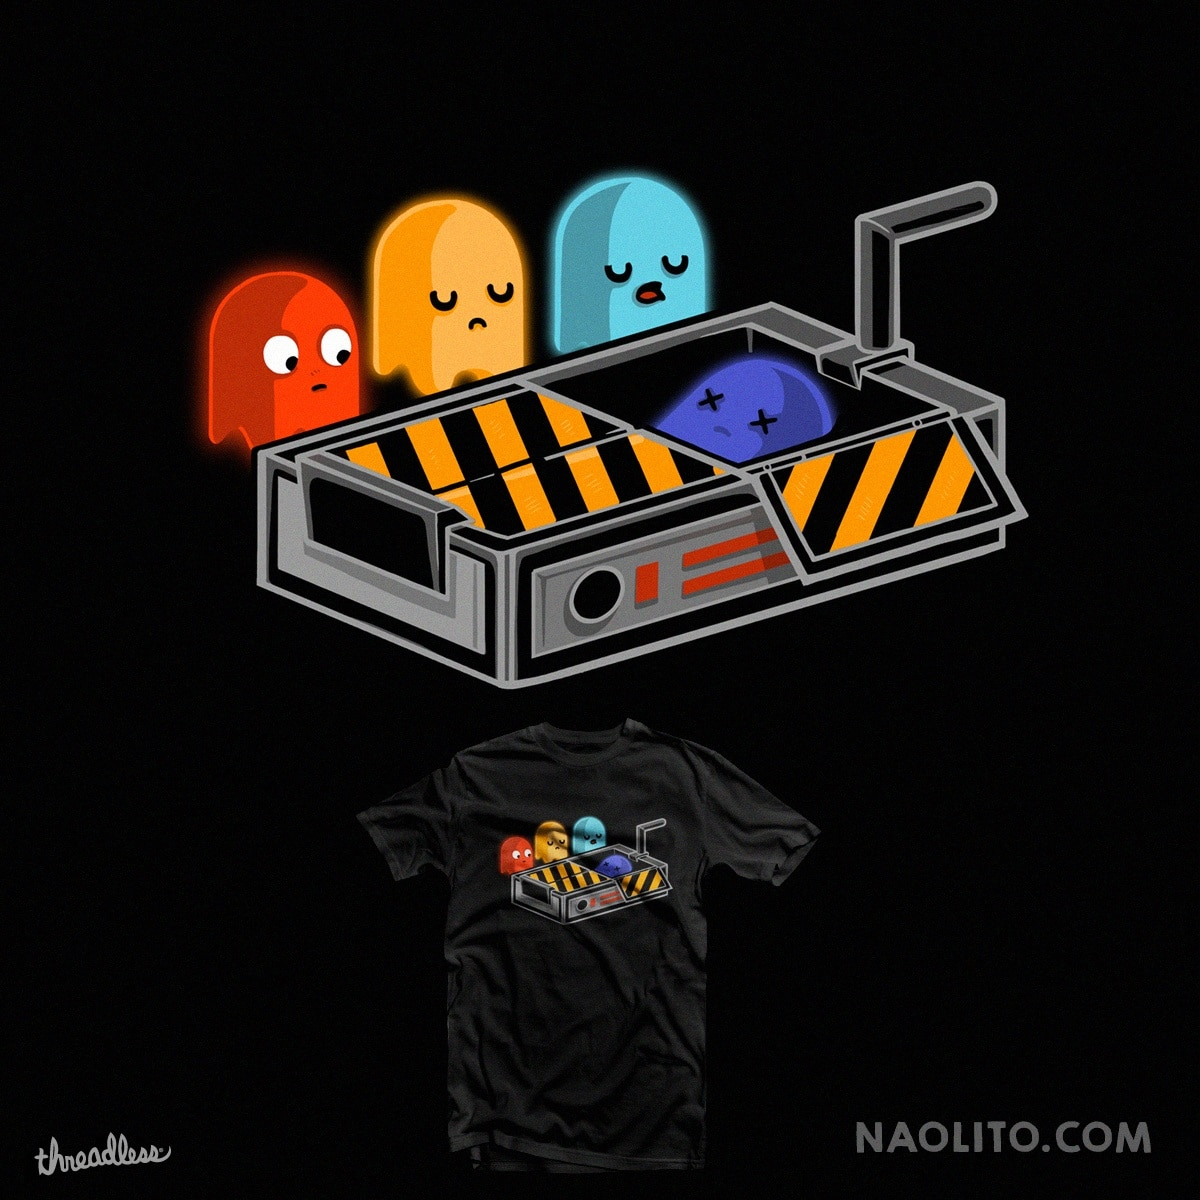 Ghost Busted by Naolito on Threadless